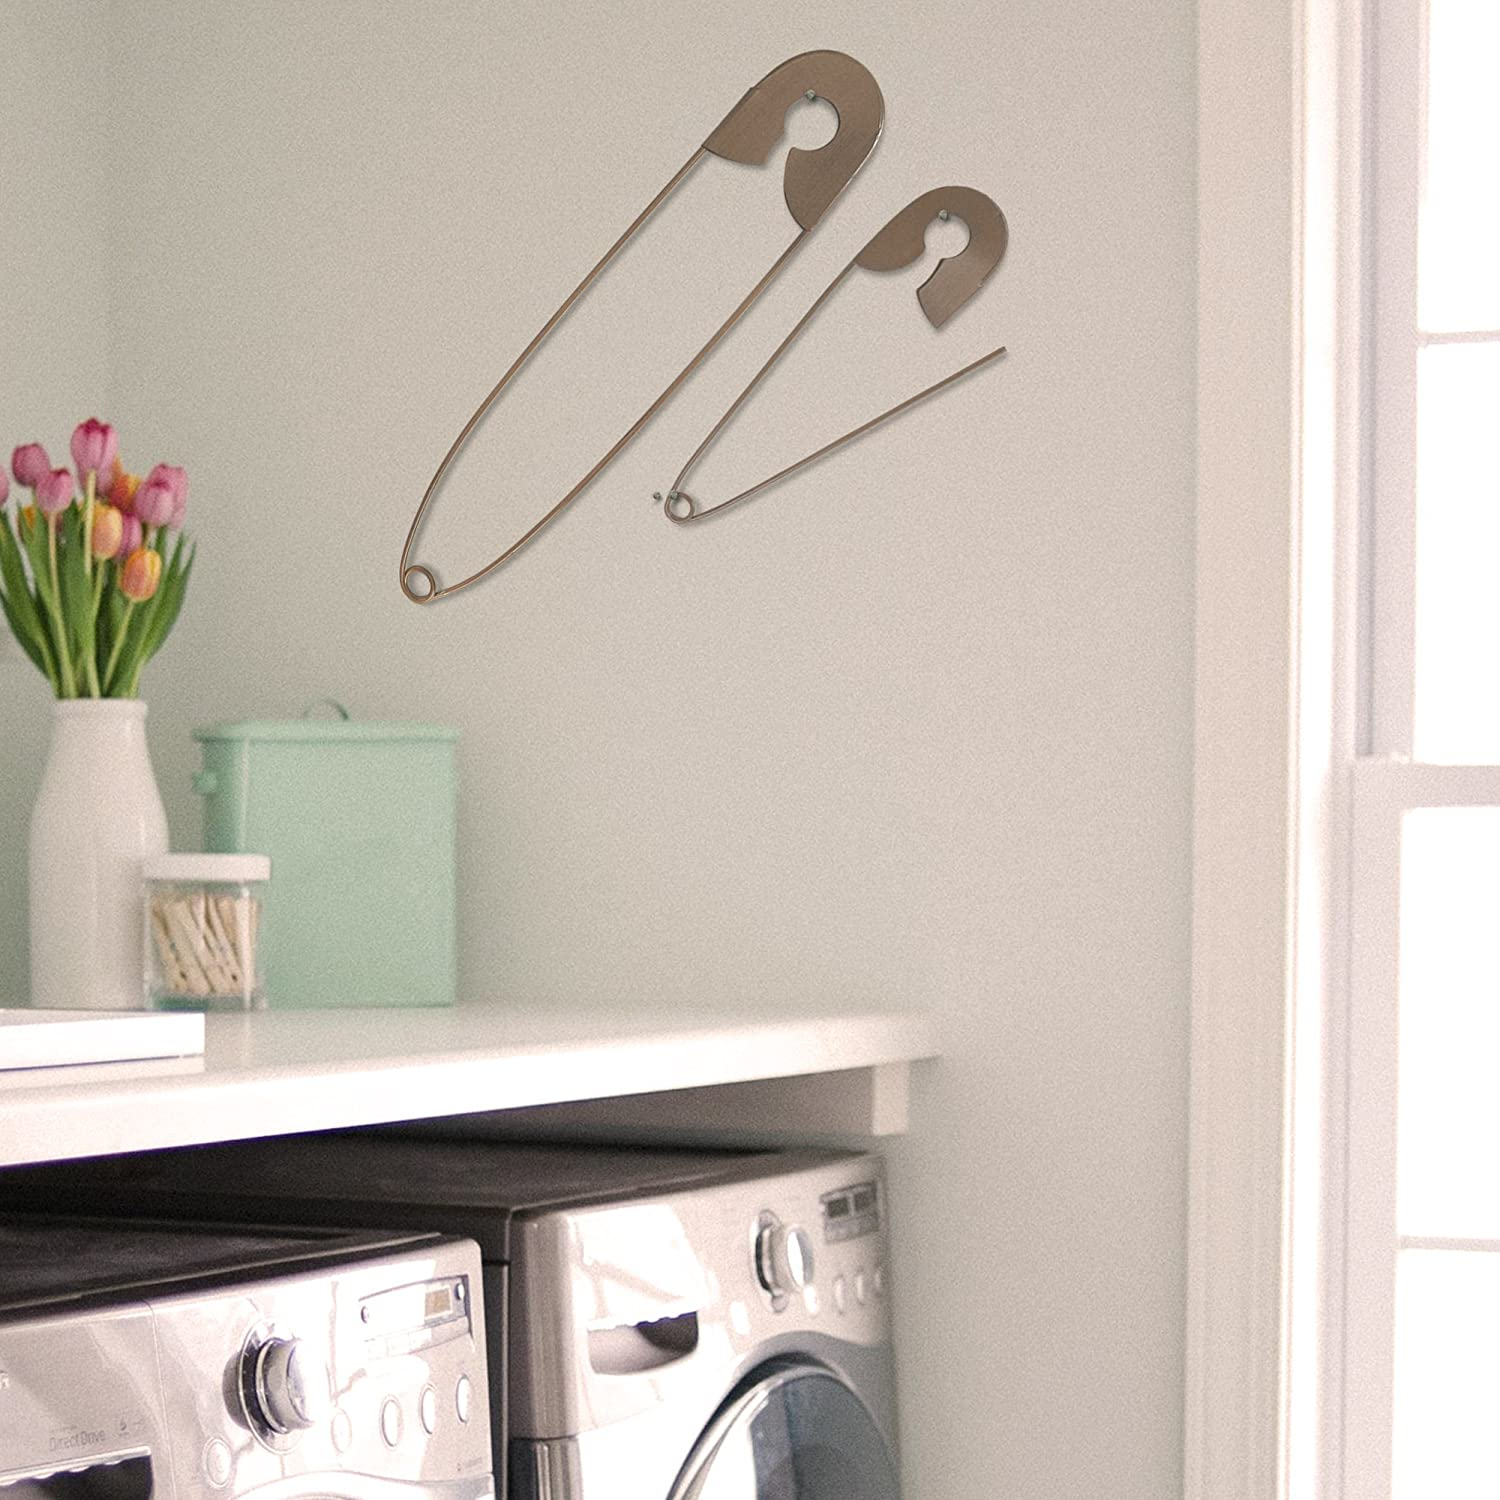 Set Of 2 Large Hanging Safety Pins Rustic Color Laundry Room Wall Home Decoration Amazon In Office Products